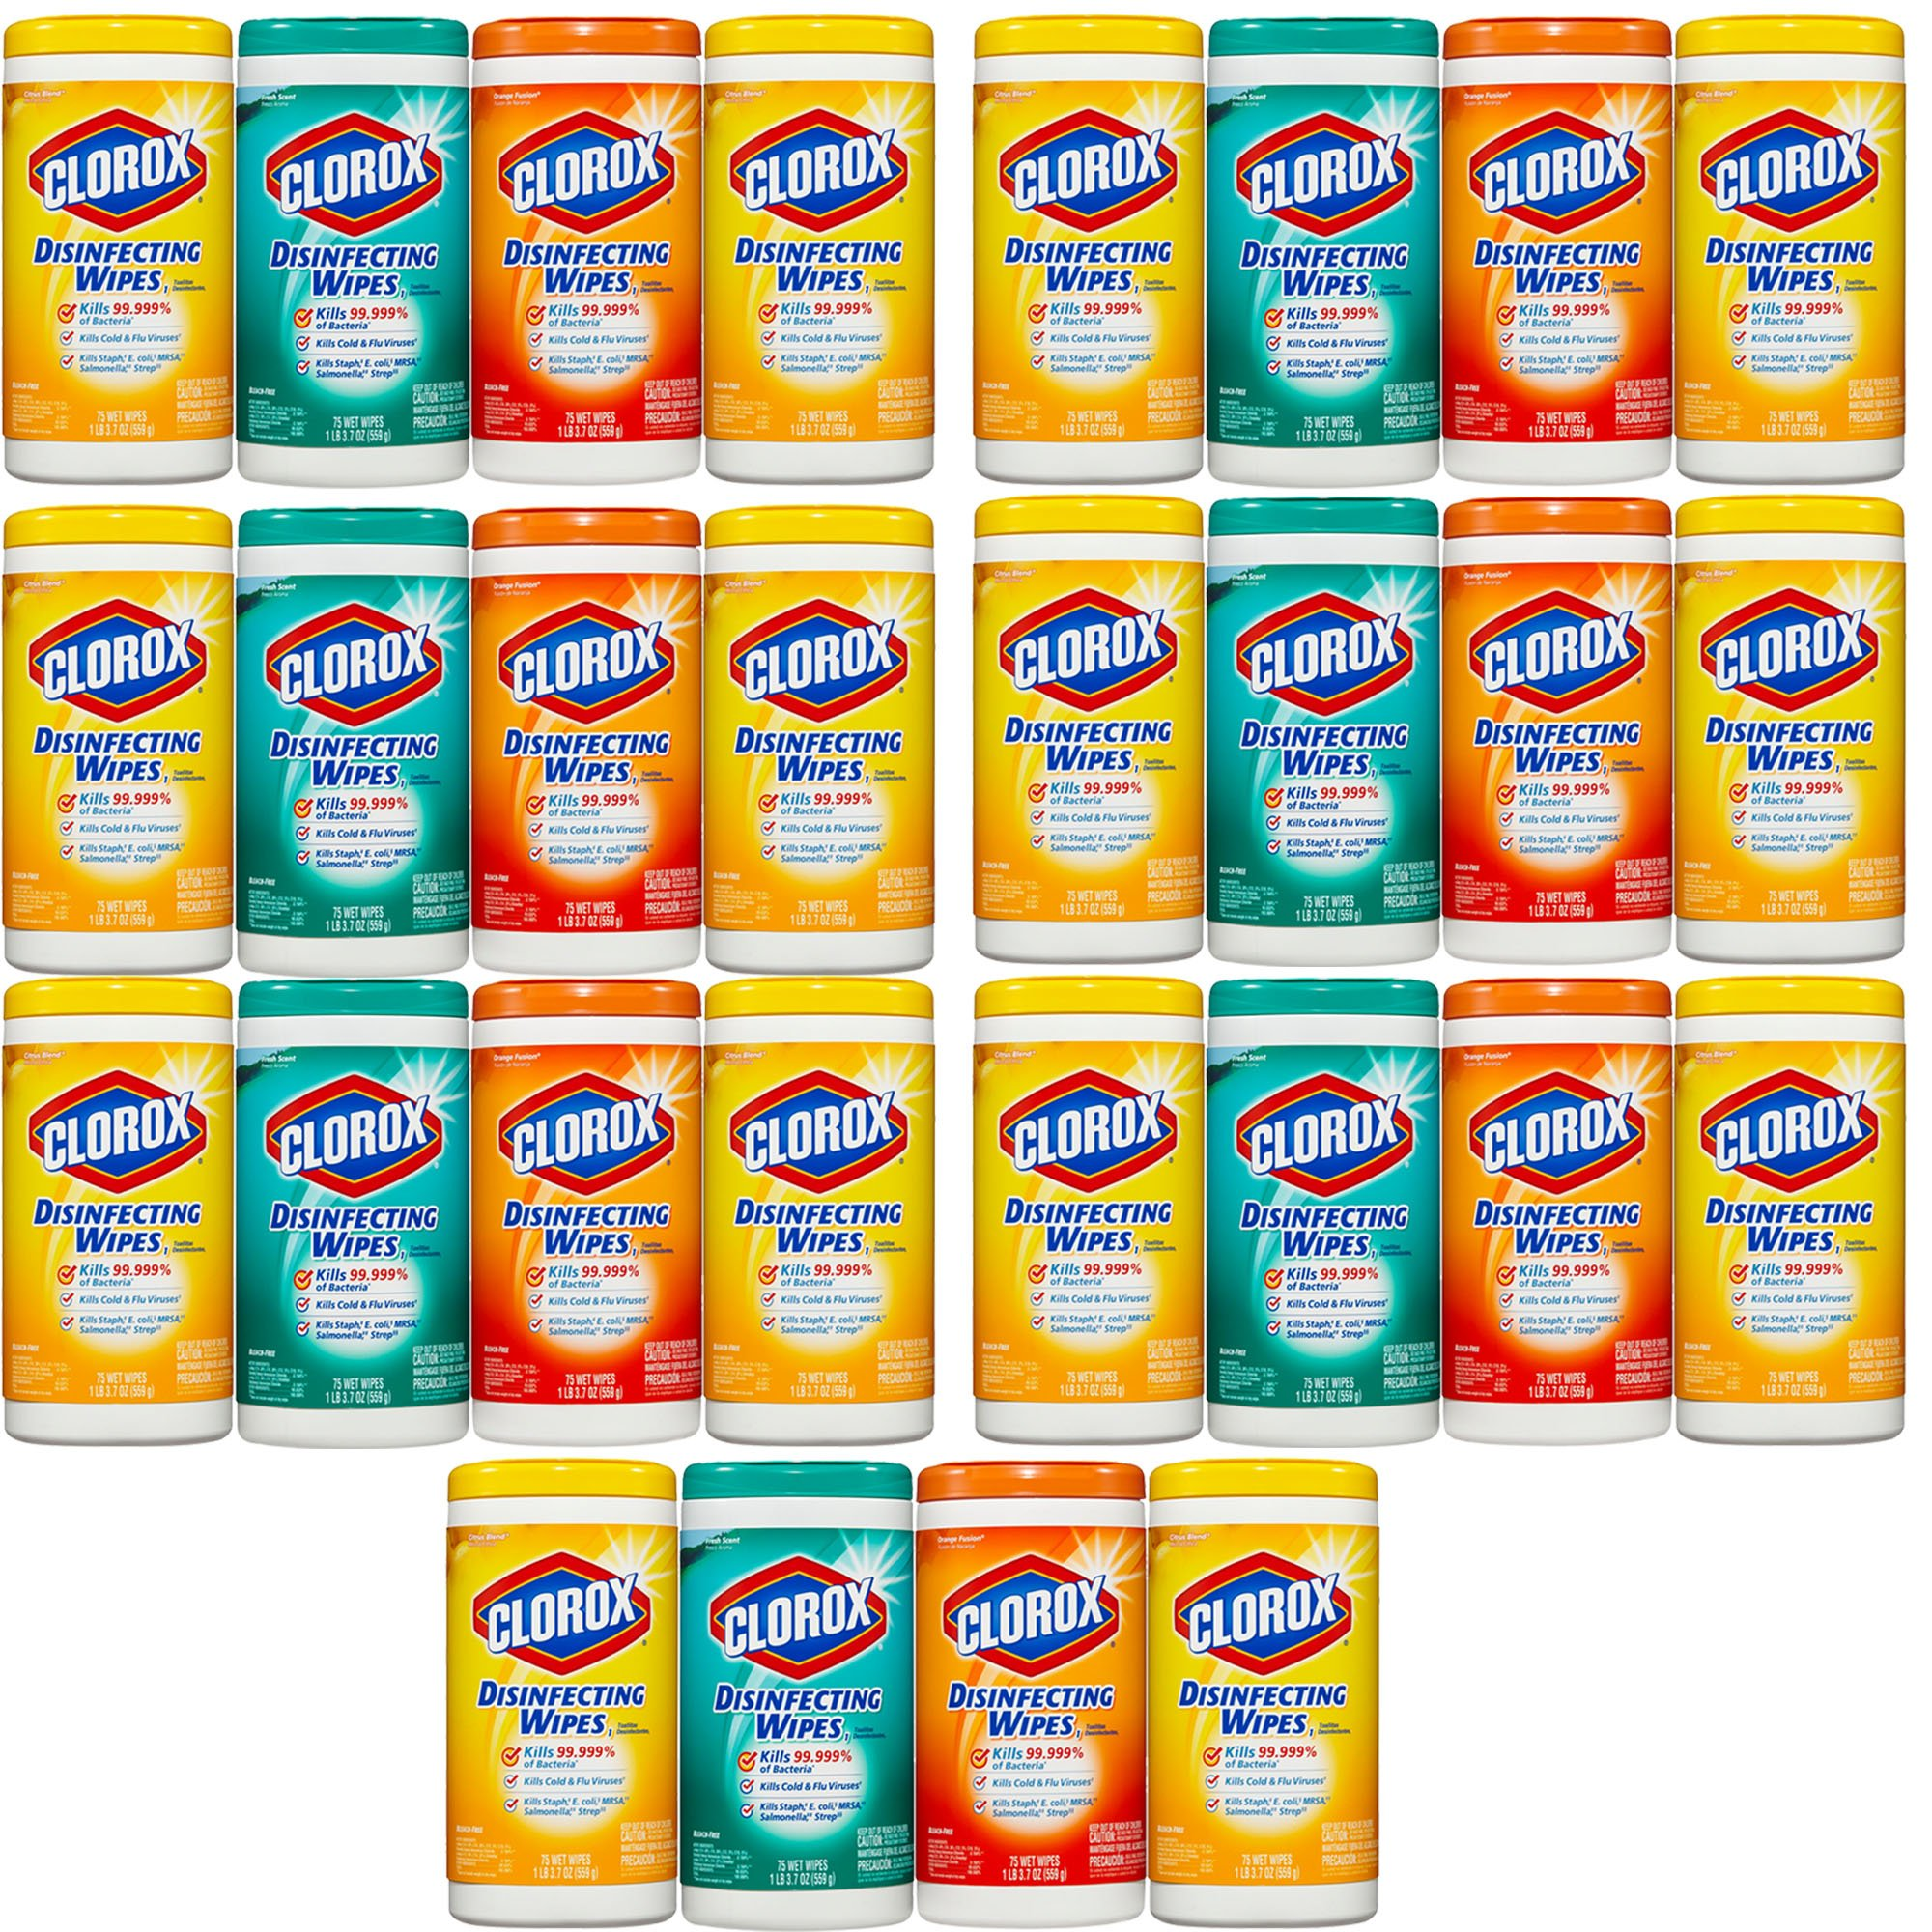 Clorox Disinfecting Cleaning Wipes Value Pack, Crisp Lemon Scent, Fresh Scent and Orange Fusion Scent, 75 Wipes each, 7-Pack (28ct)